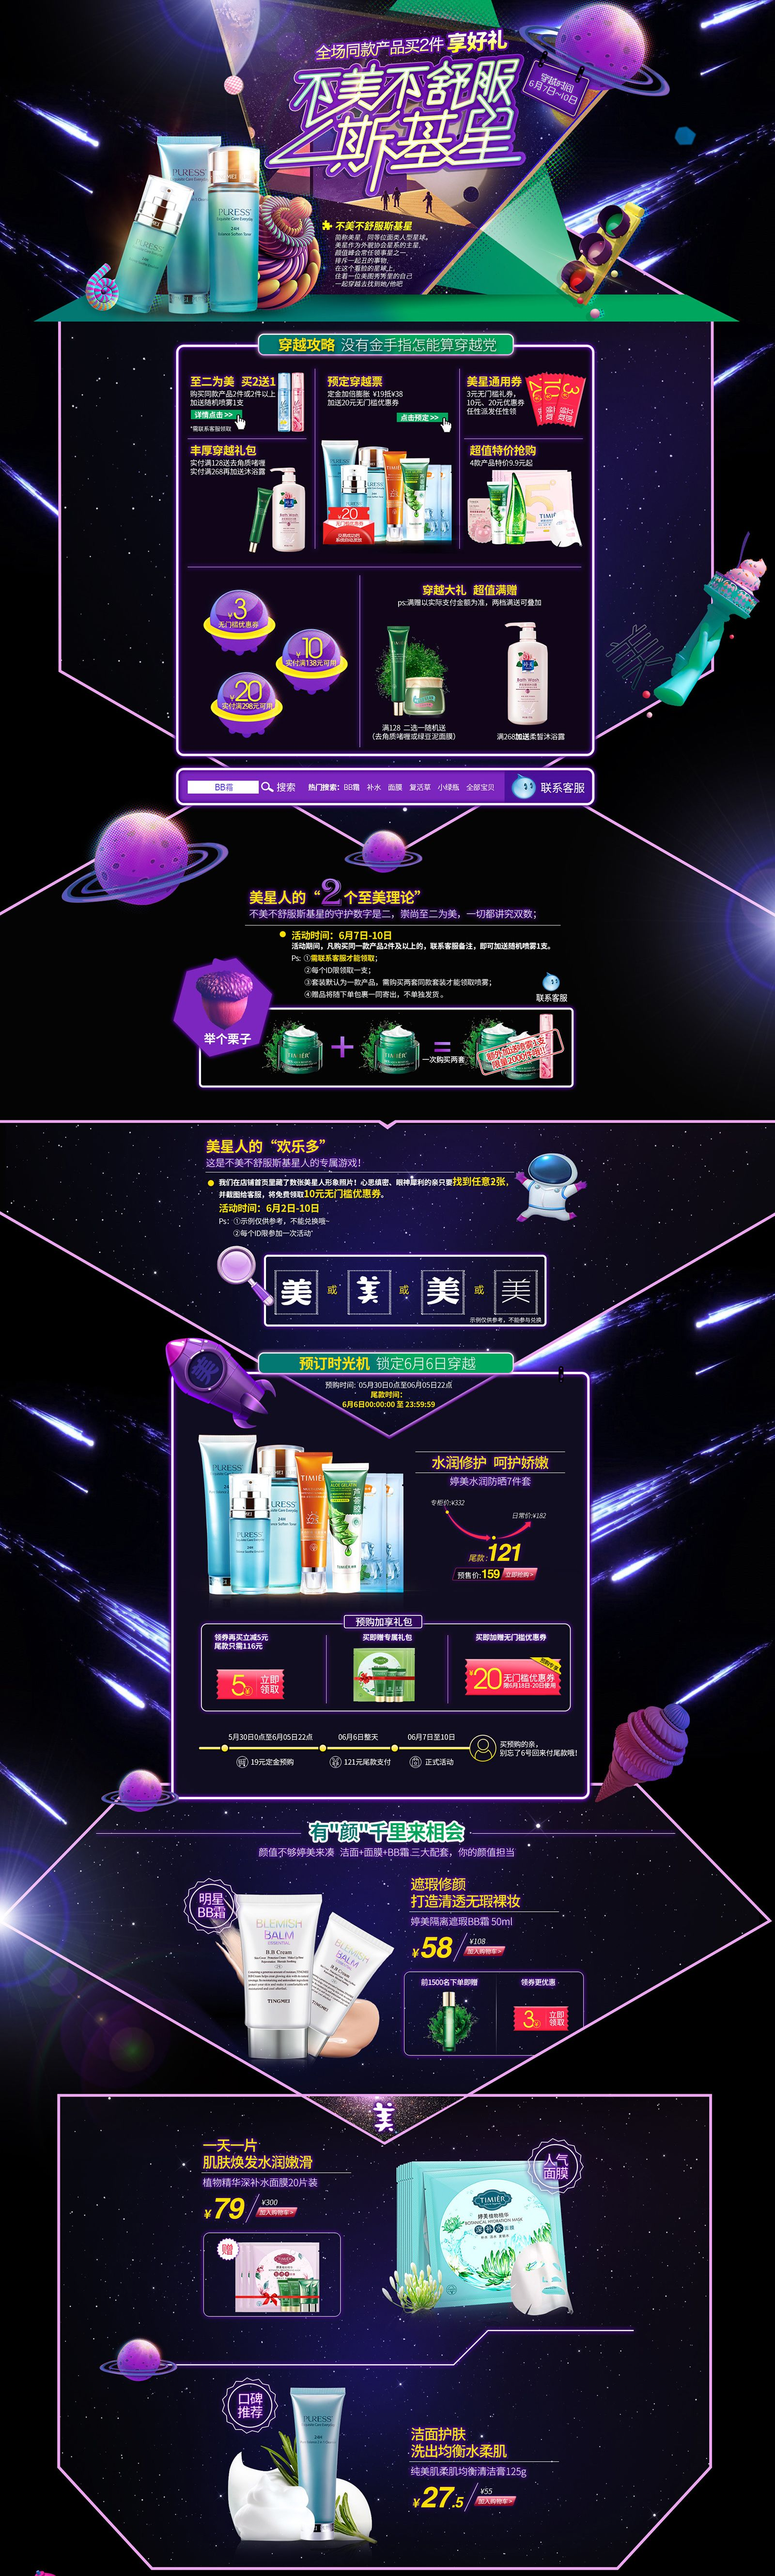 Timier Ladies Cosmetics 618 Fans Carnival Time Travel To Enjoy Good Gift Shop Interface Design Chinese Web Design